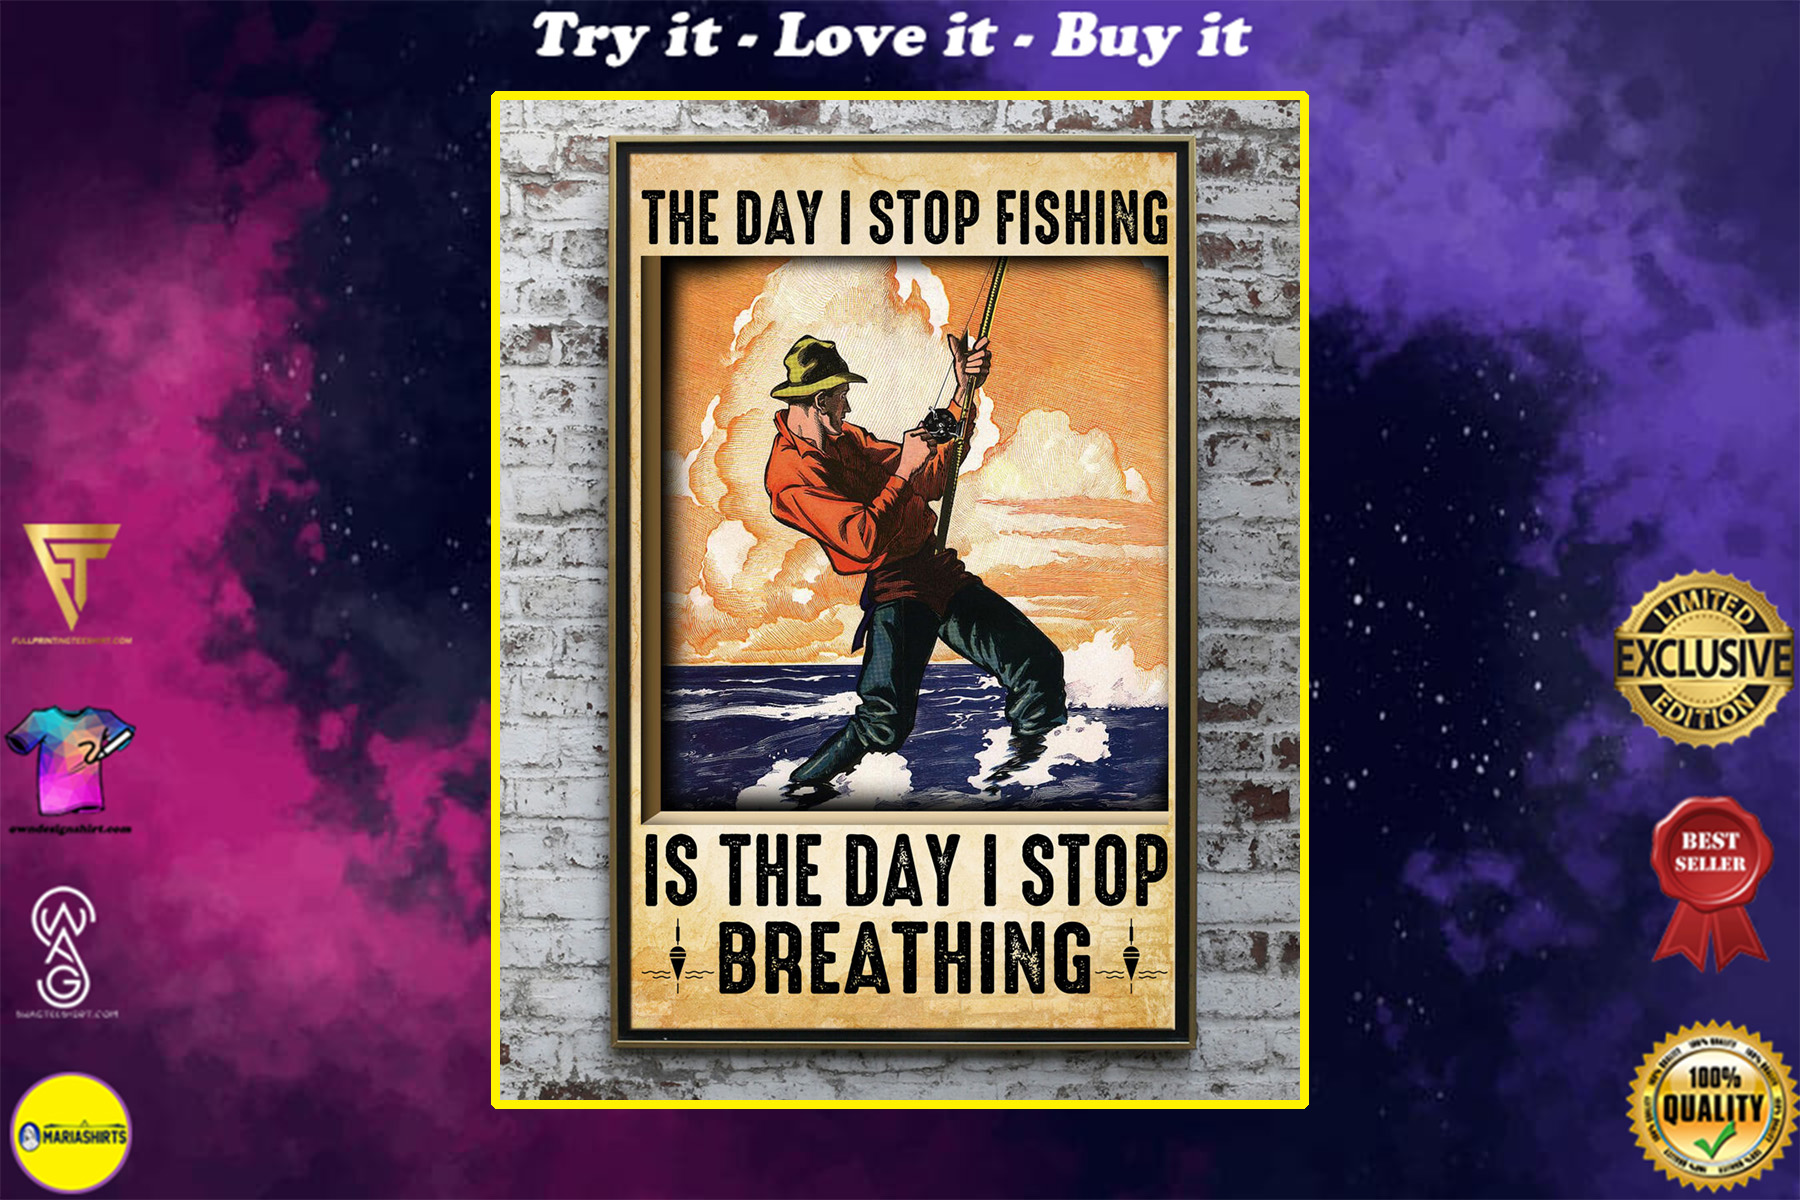 the day i stop fishing is the day i stop breathing poster